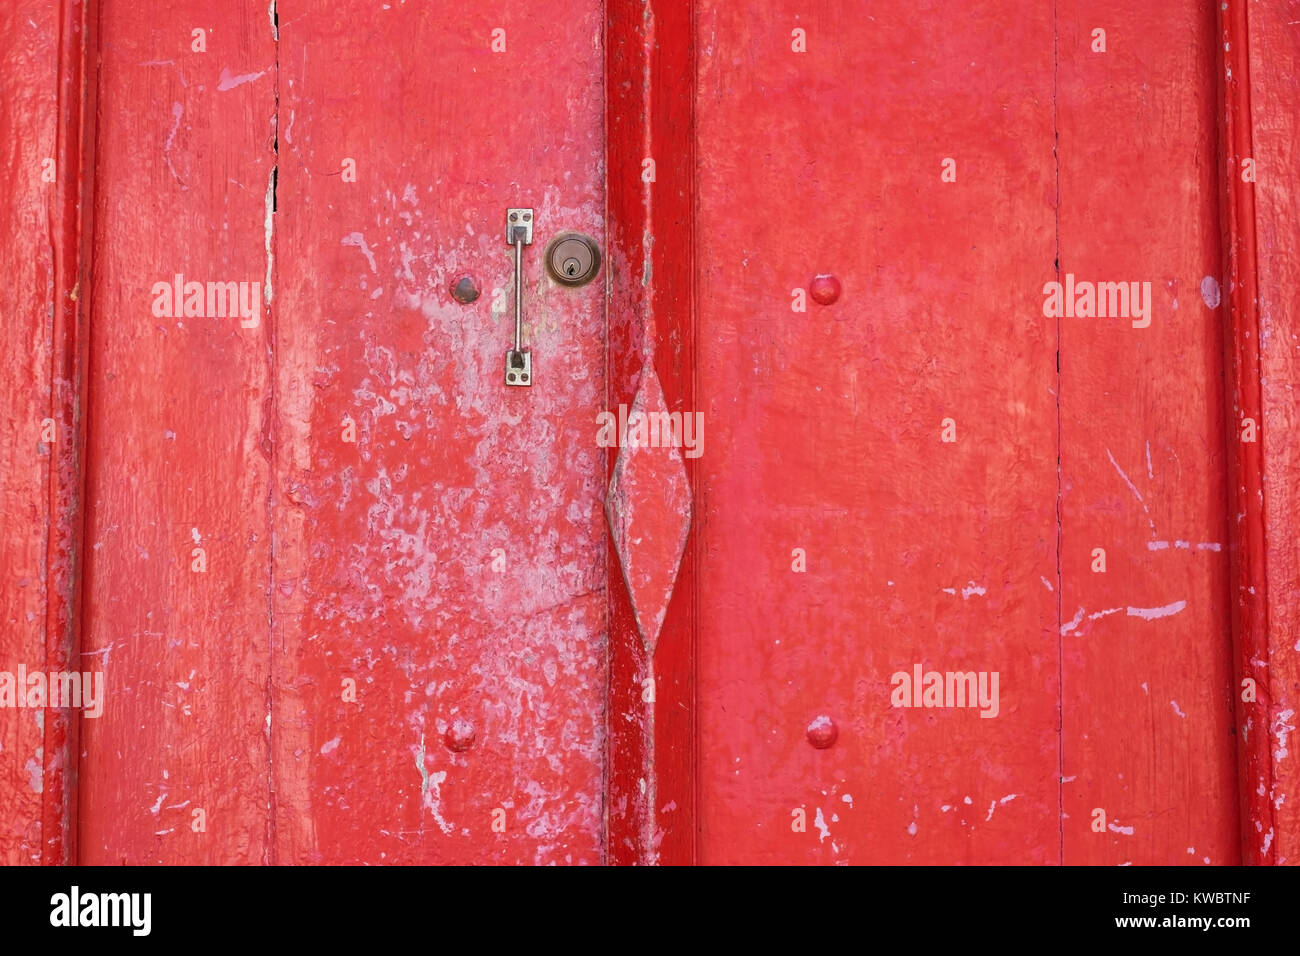 Red wooden antique door with small handle - Stock Image